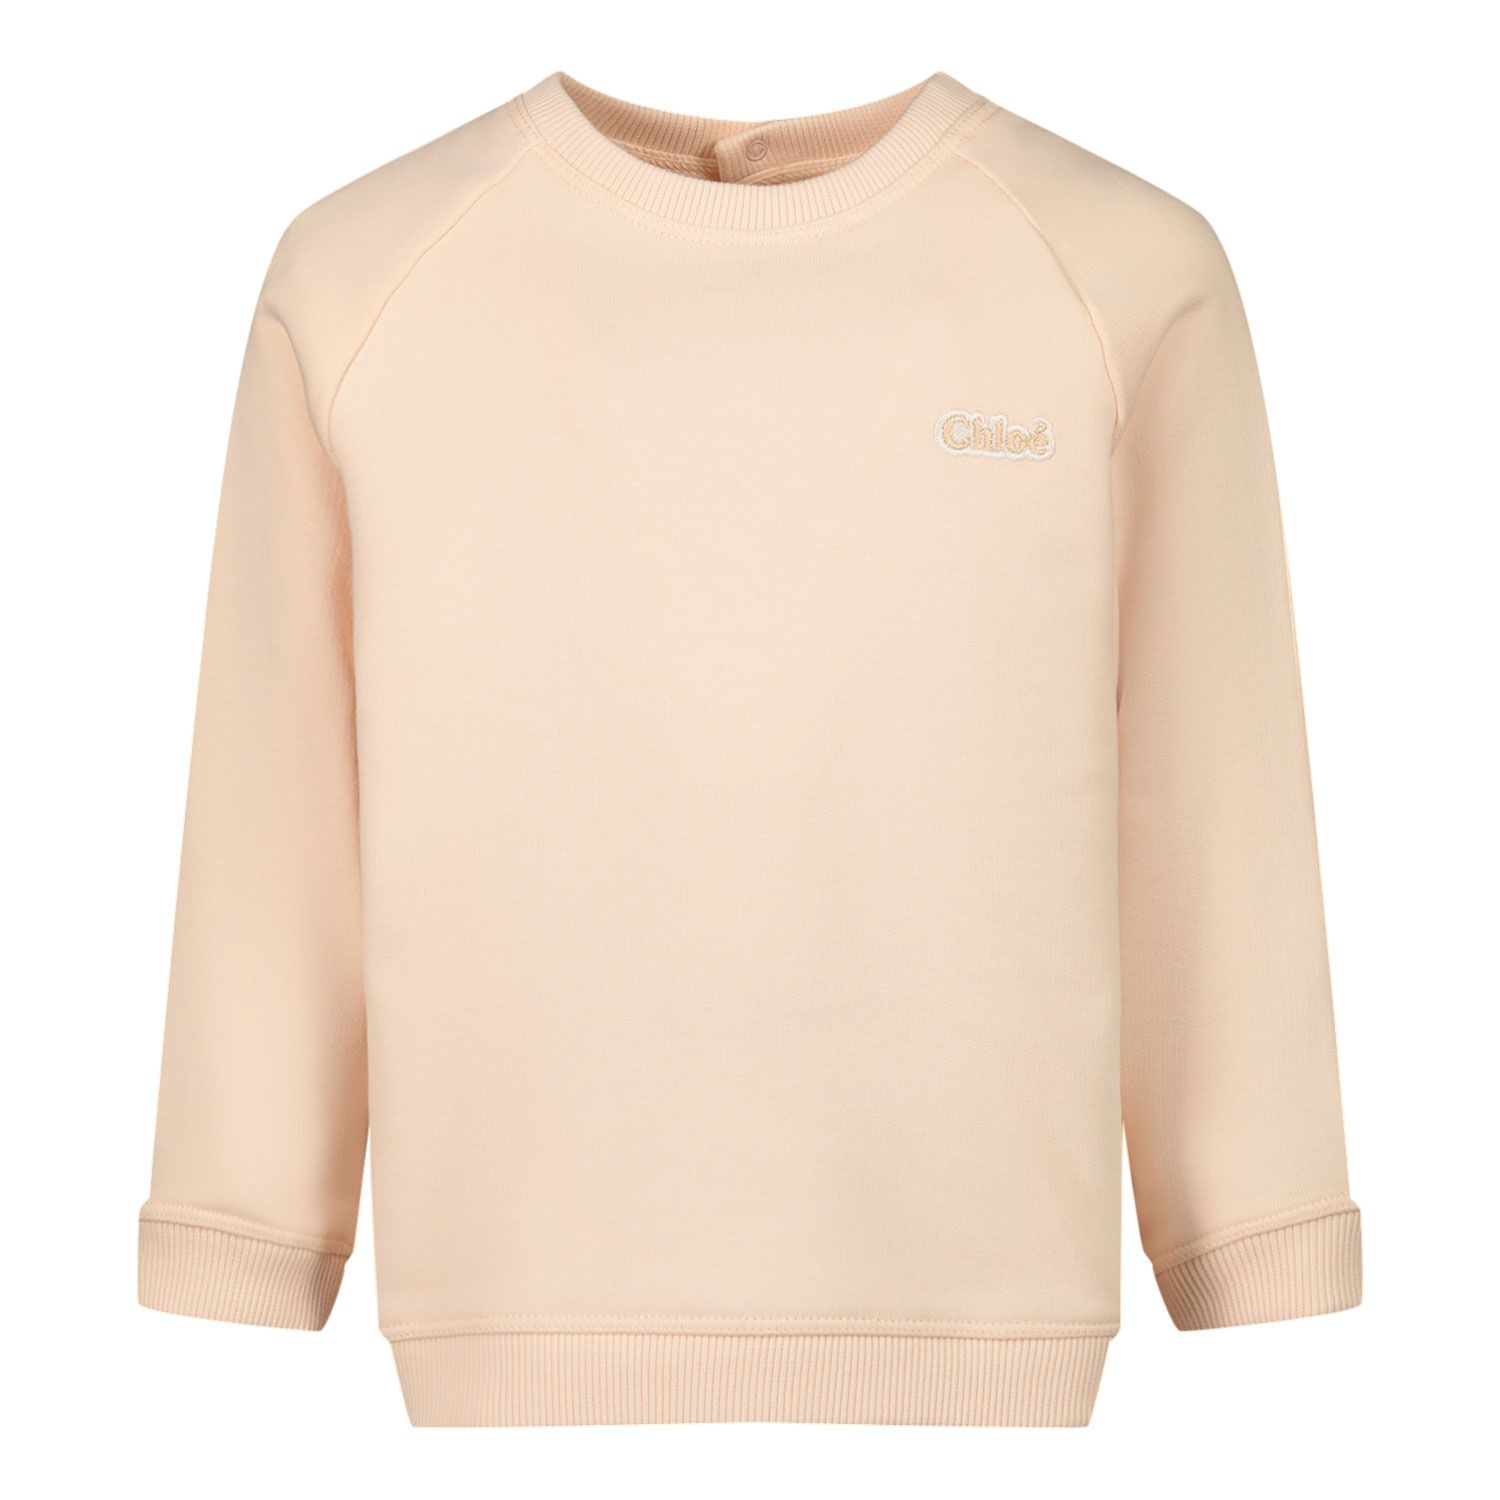 Picture of Chloé C05373 baby sweater salmon